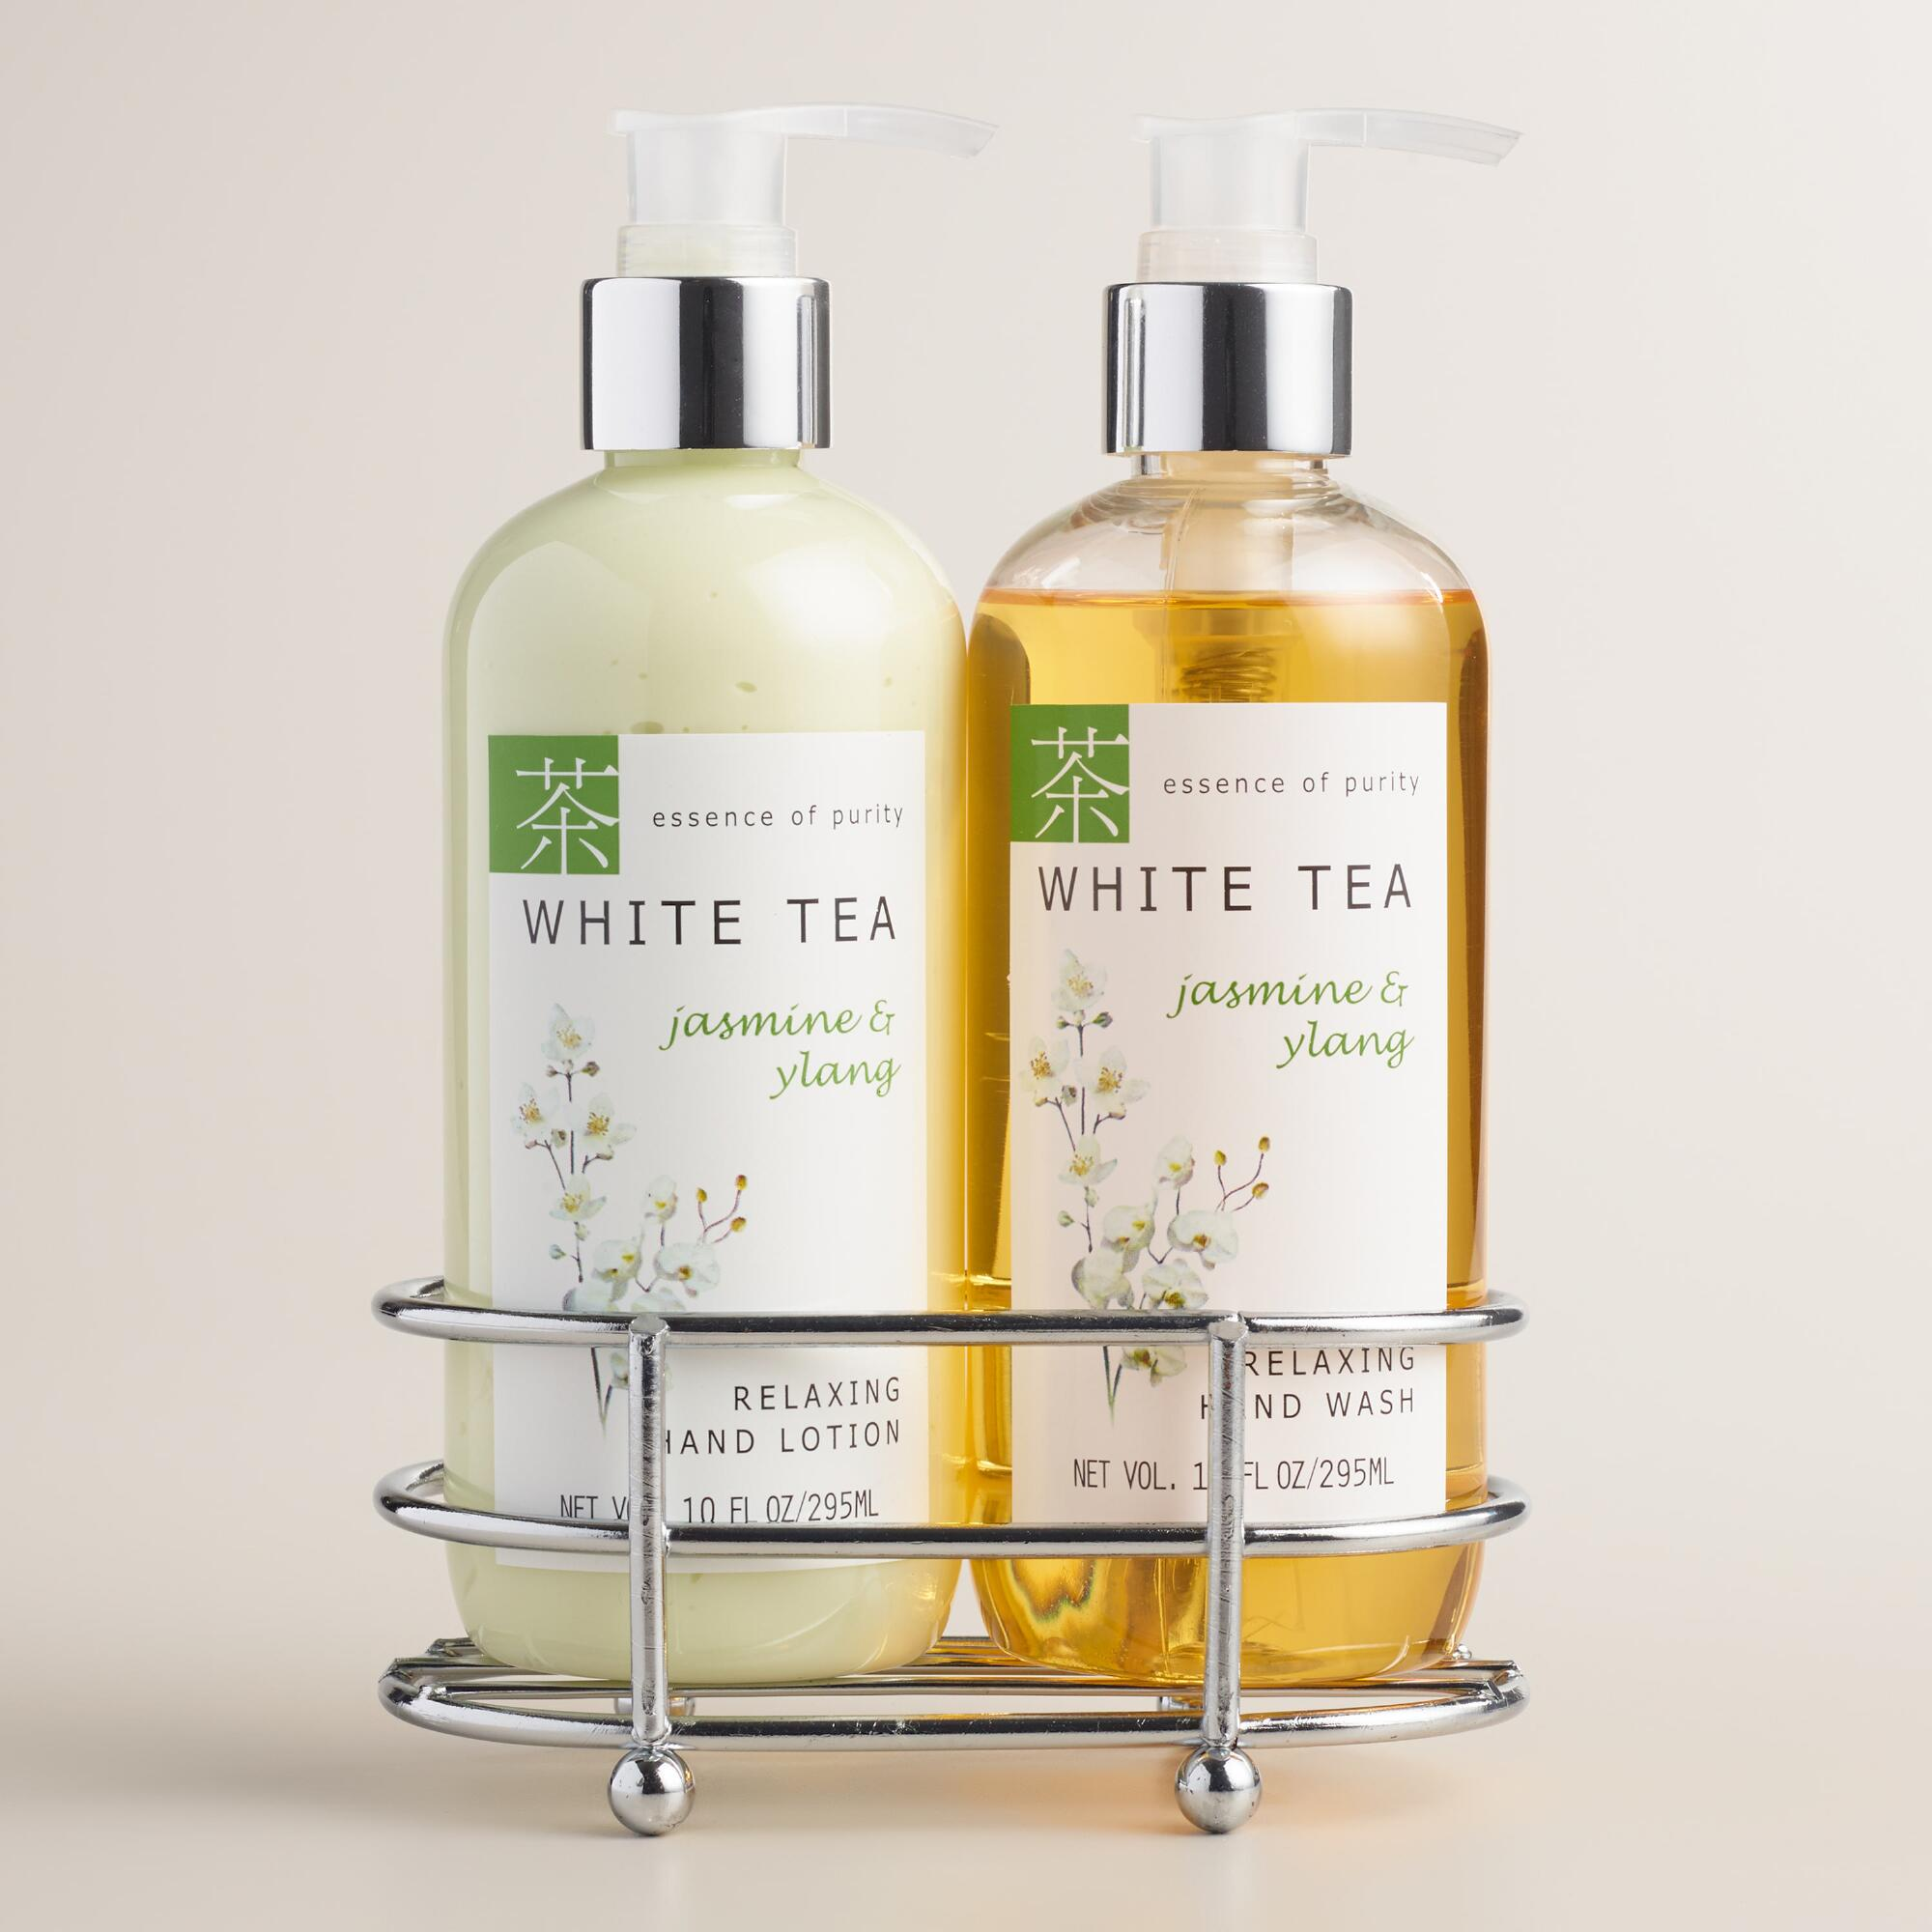 White tea jasmine ylang liquid soap and lotion caddy Hand wash and lotion caddy